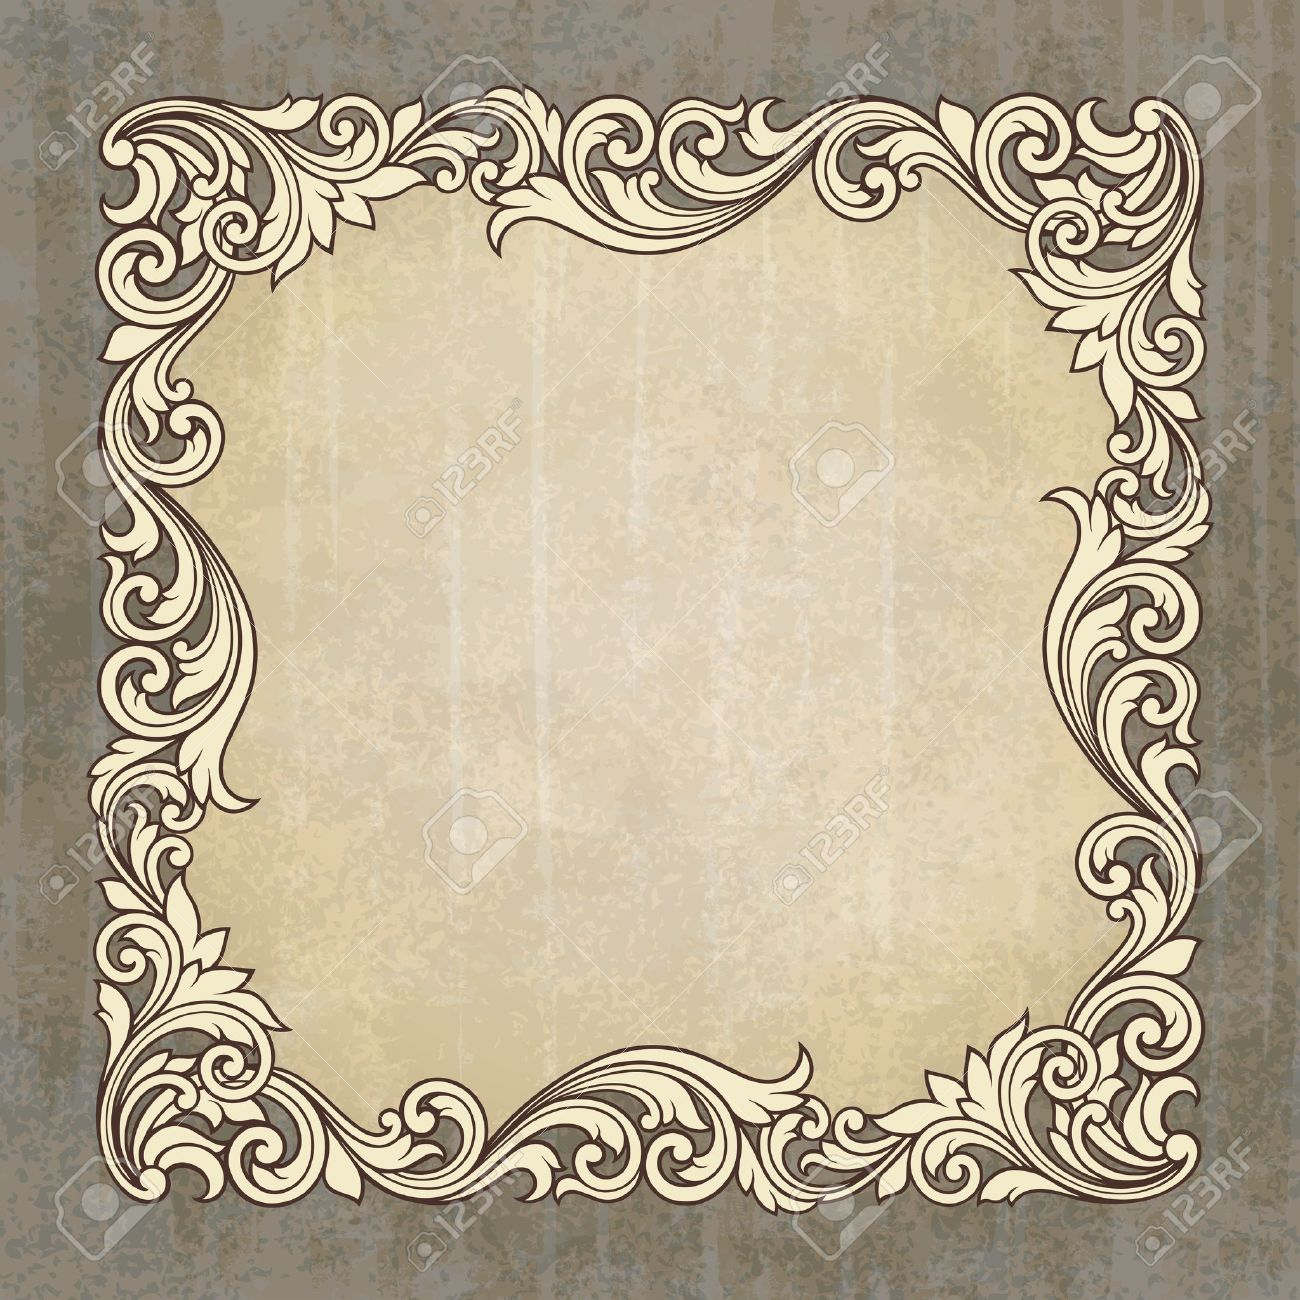 vintage border frame engraving at grunge background with retro ornament pattern in antique baroque style decorative design invitation card - 14667018